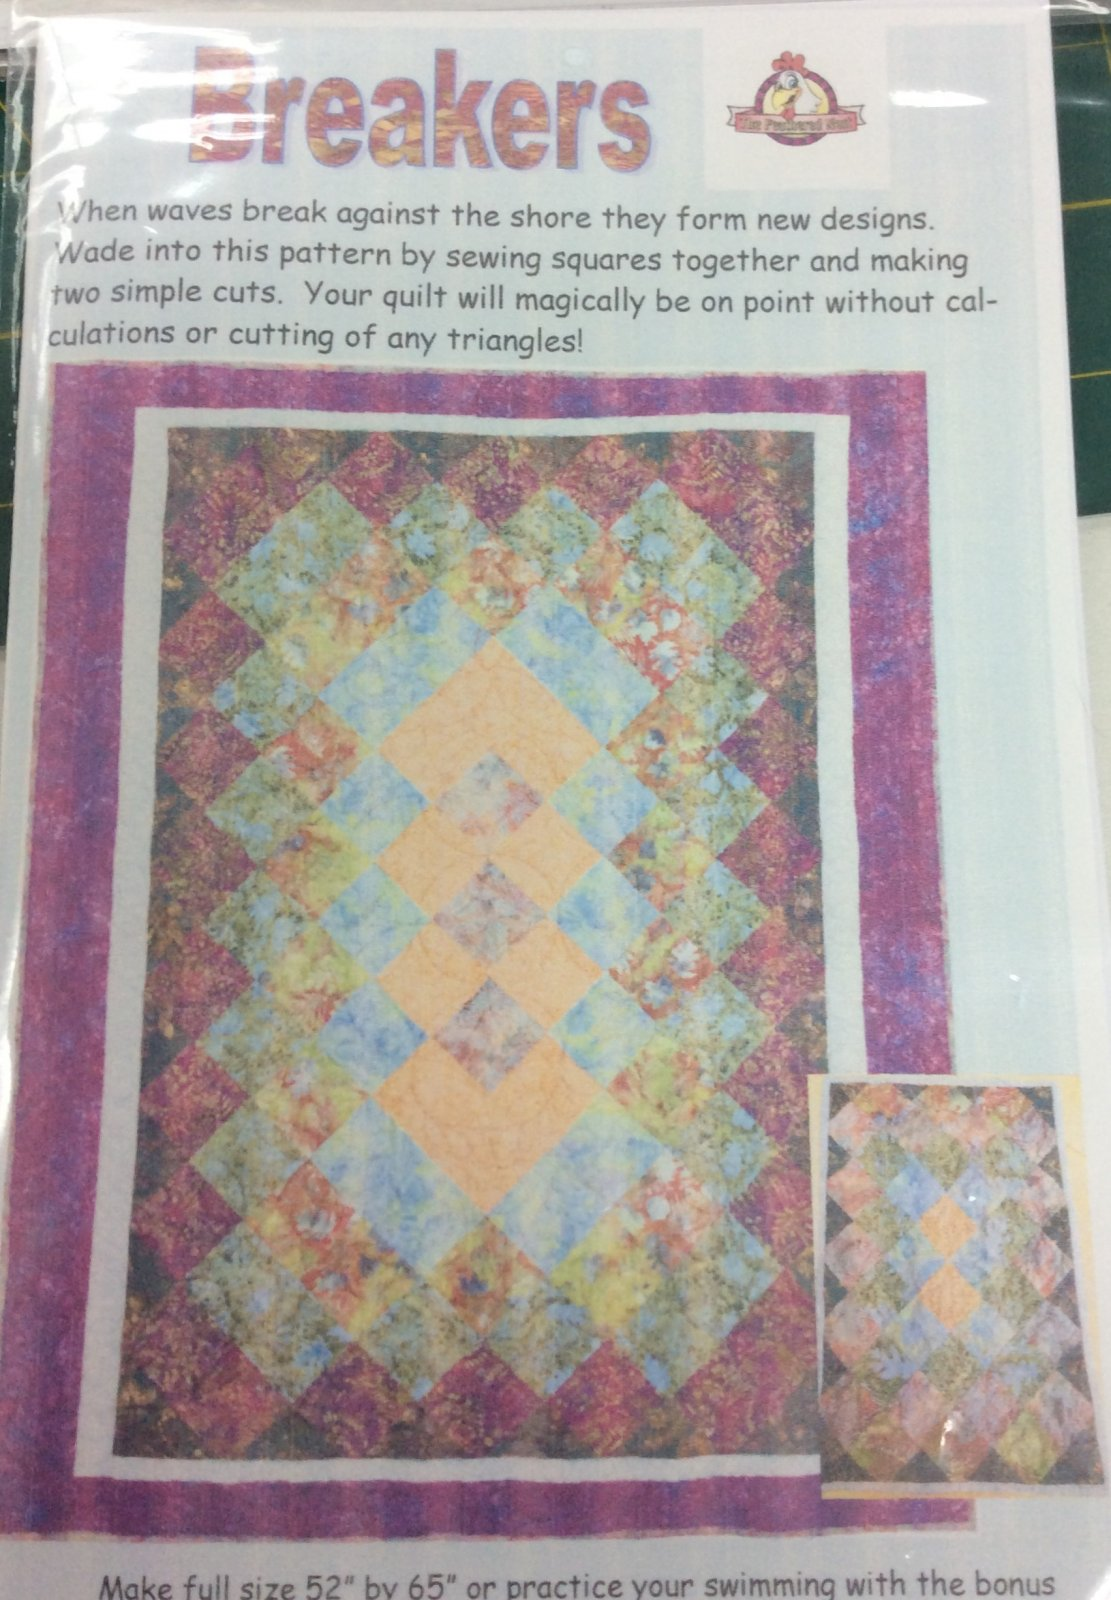 Breakers quilt pattern